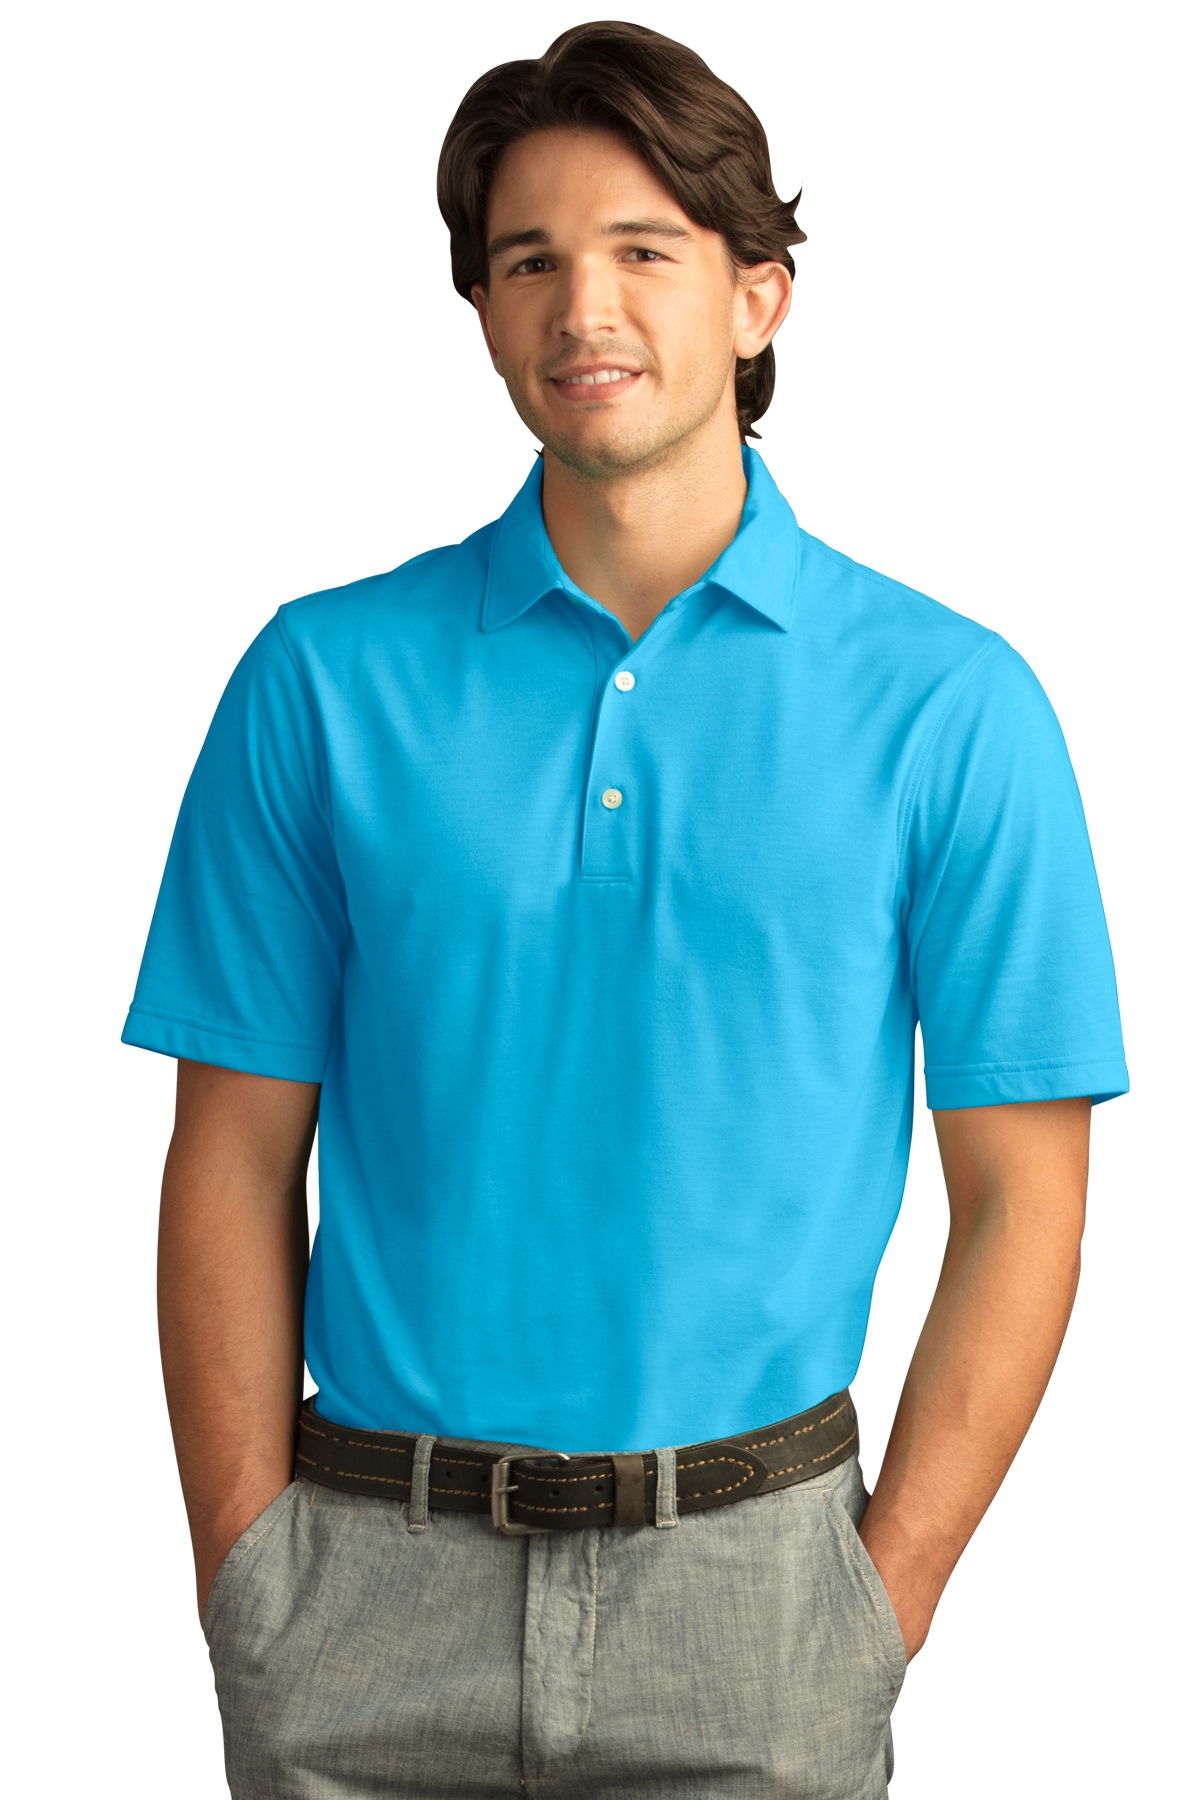 Greg Norman GNS8K463 - Men's Play Dry Foreward Series Polo